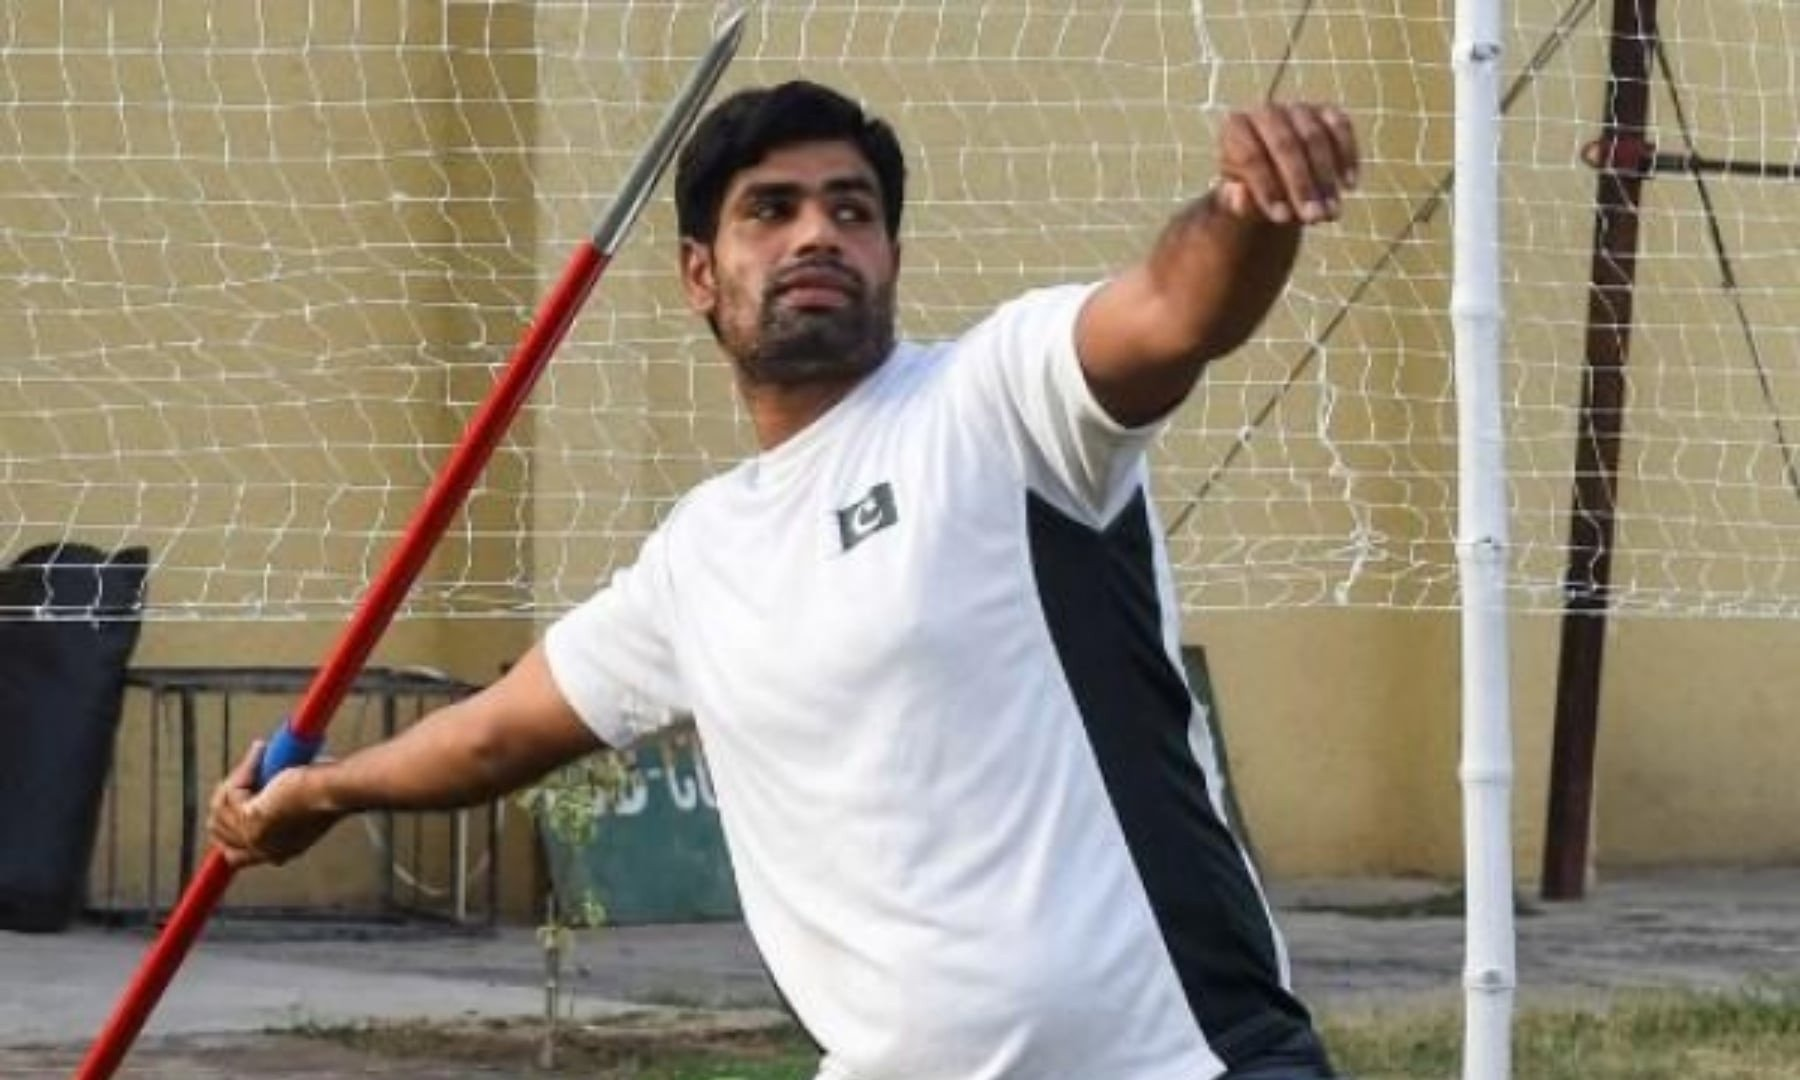 Pakistan's last hope in Olympics, javelin thrower Arshad only has medal on his mind